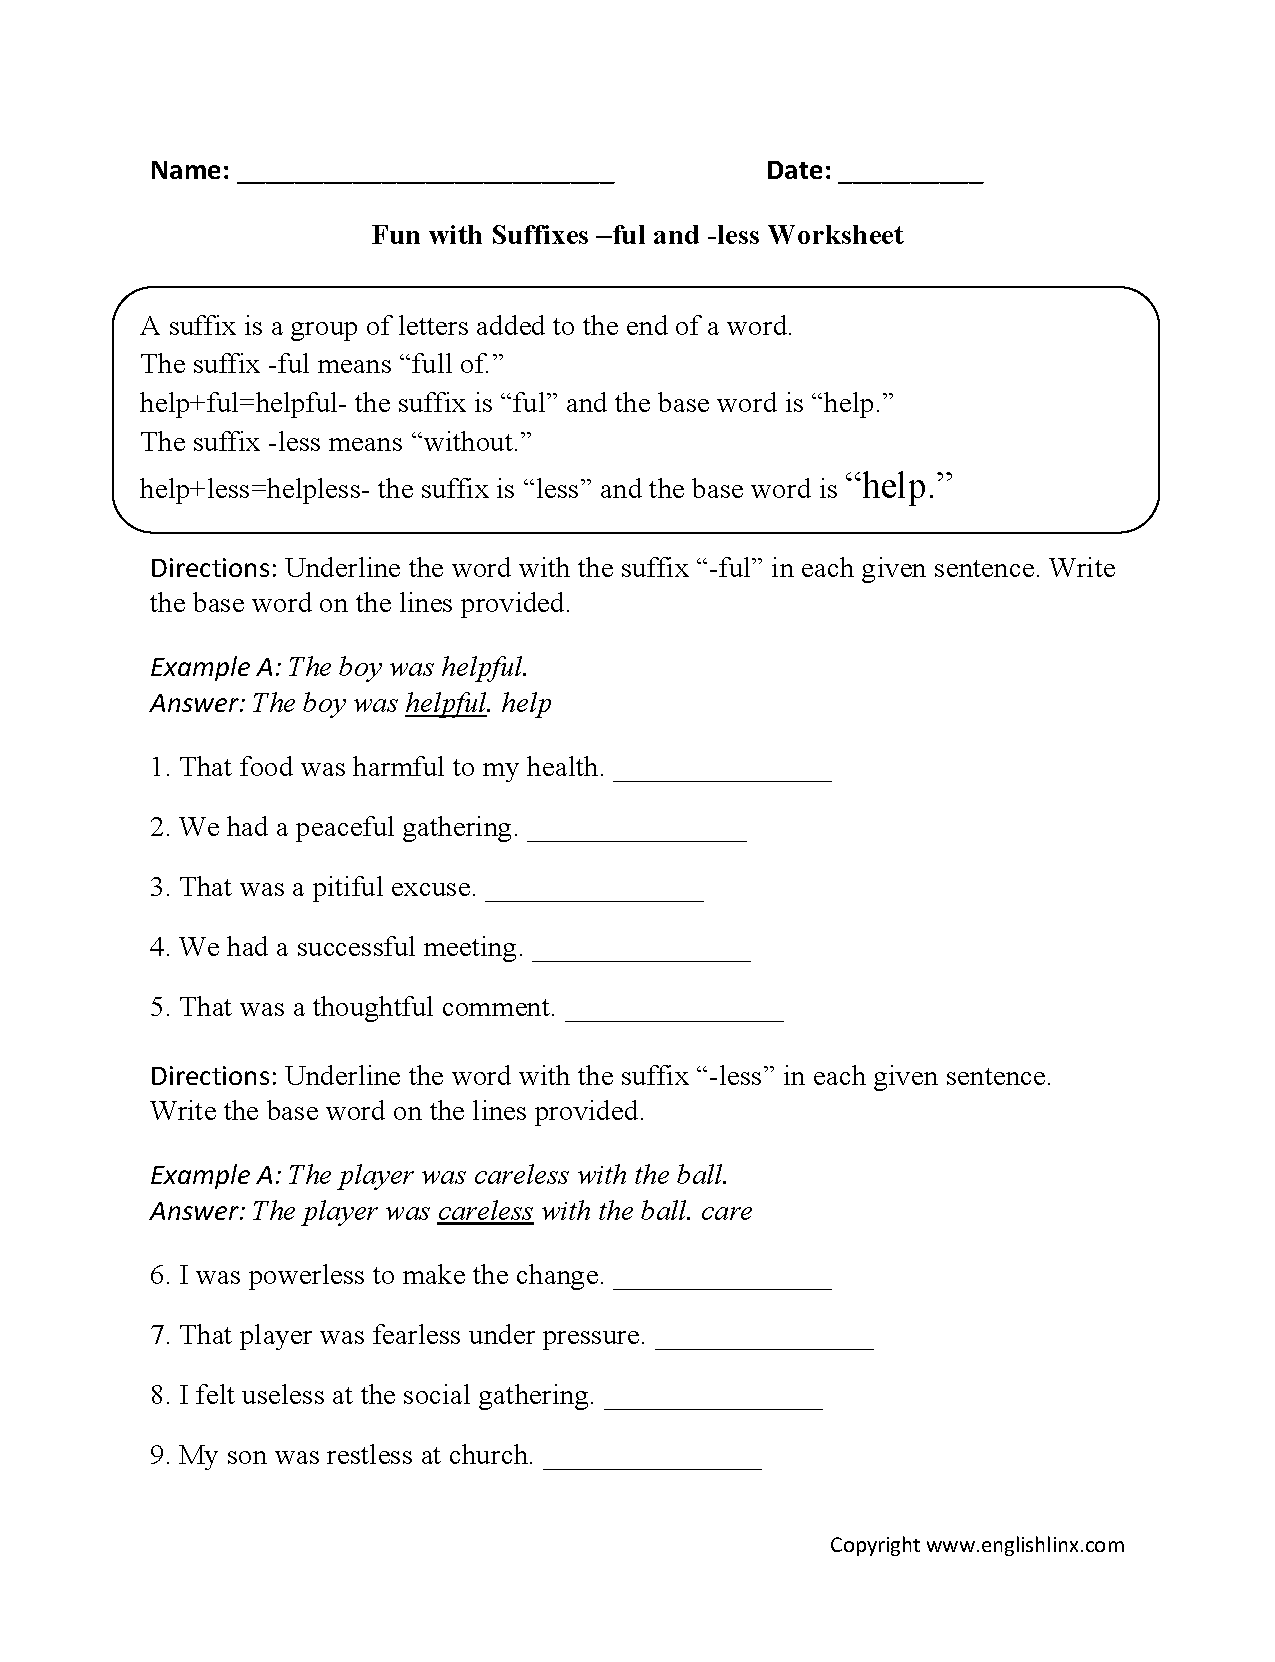 hight resolution of Suffixes Worksheets   Fun with Suffixes -ful and -less Worksheets